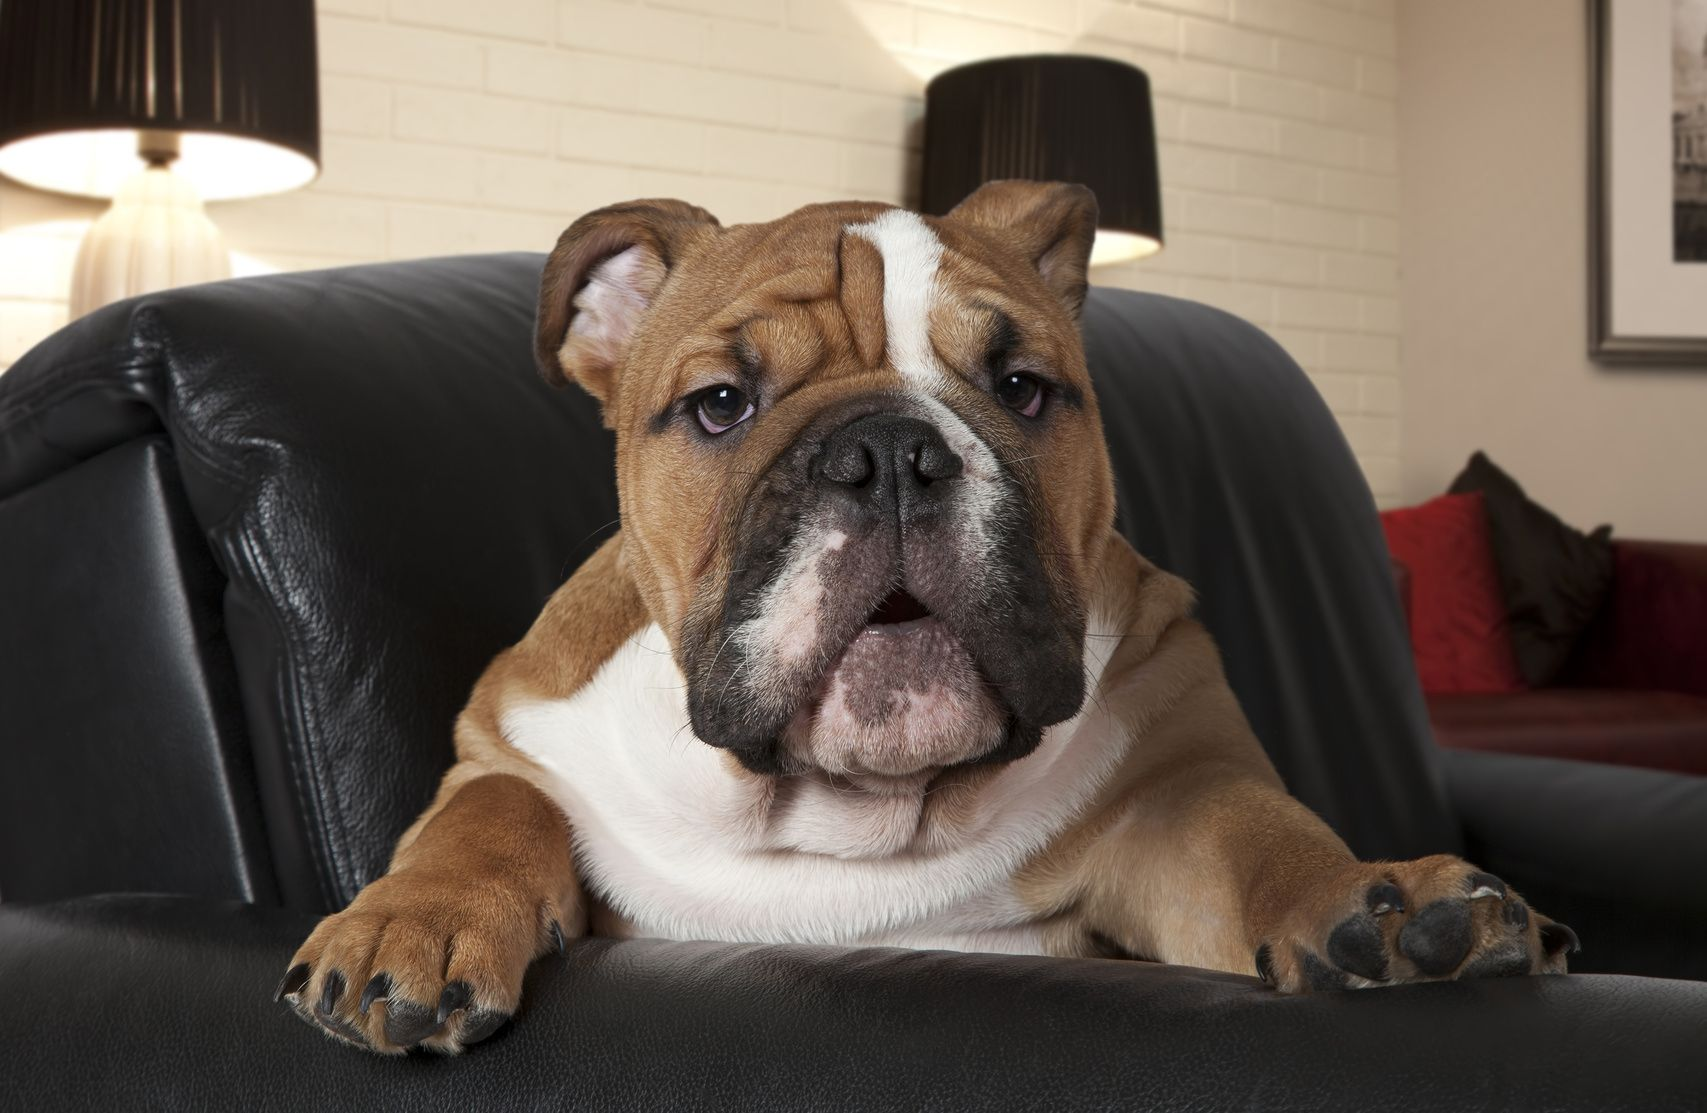 English Bulldog sitting in a black leather chair in the living room and looking at the camera